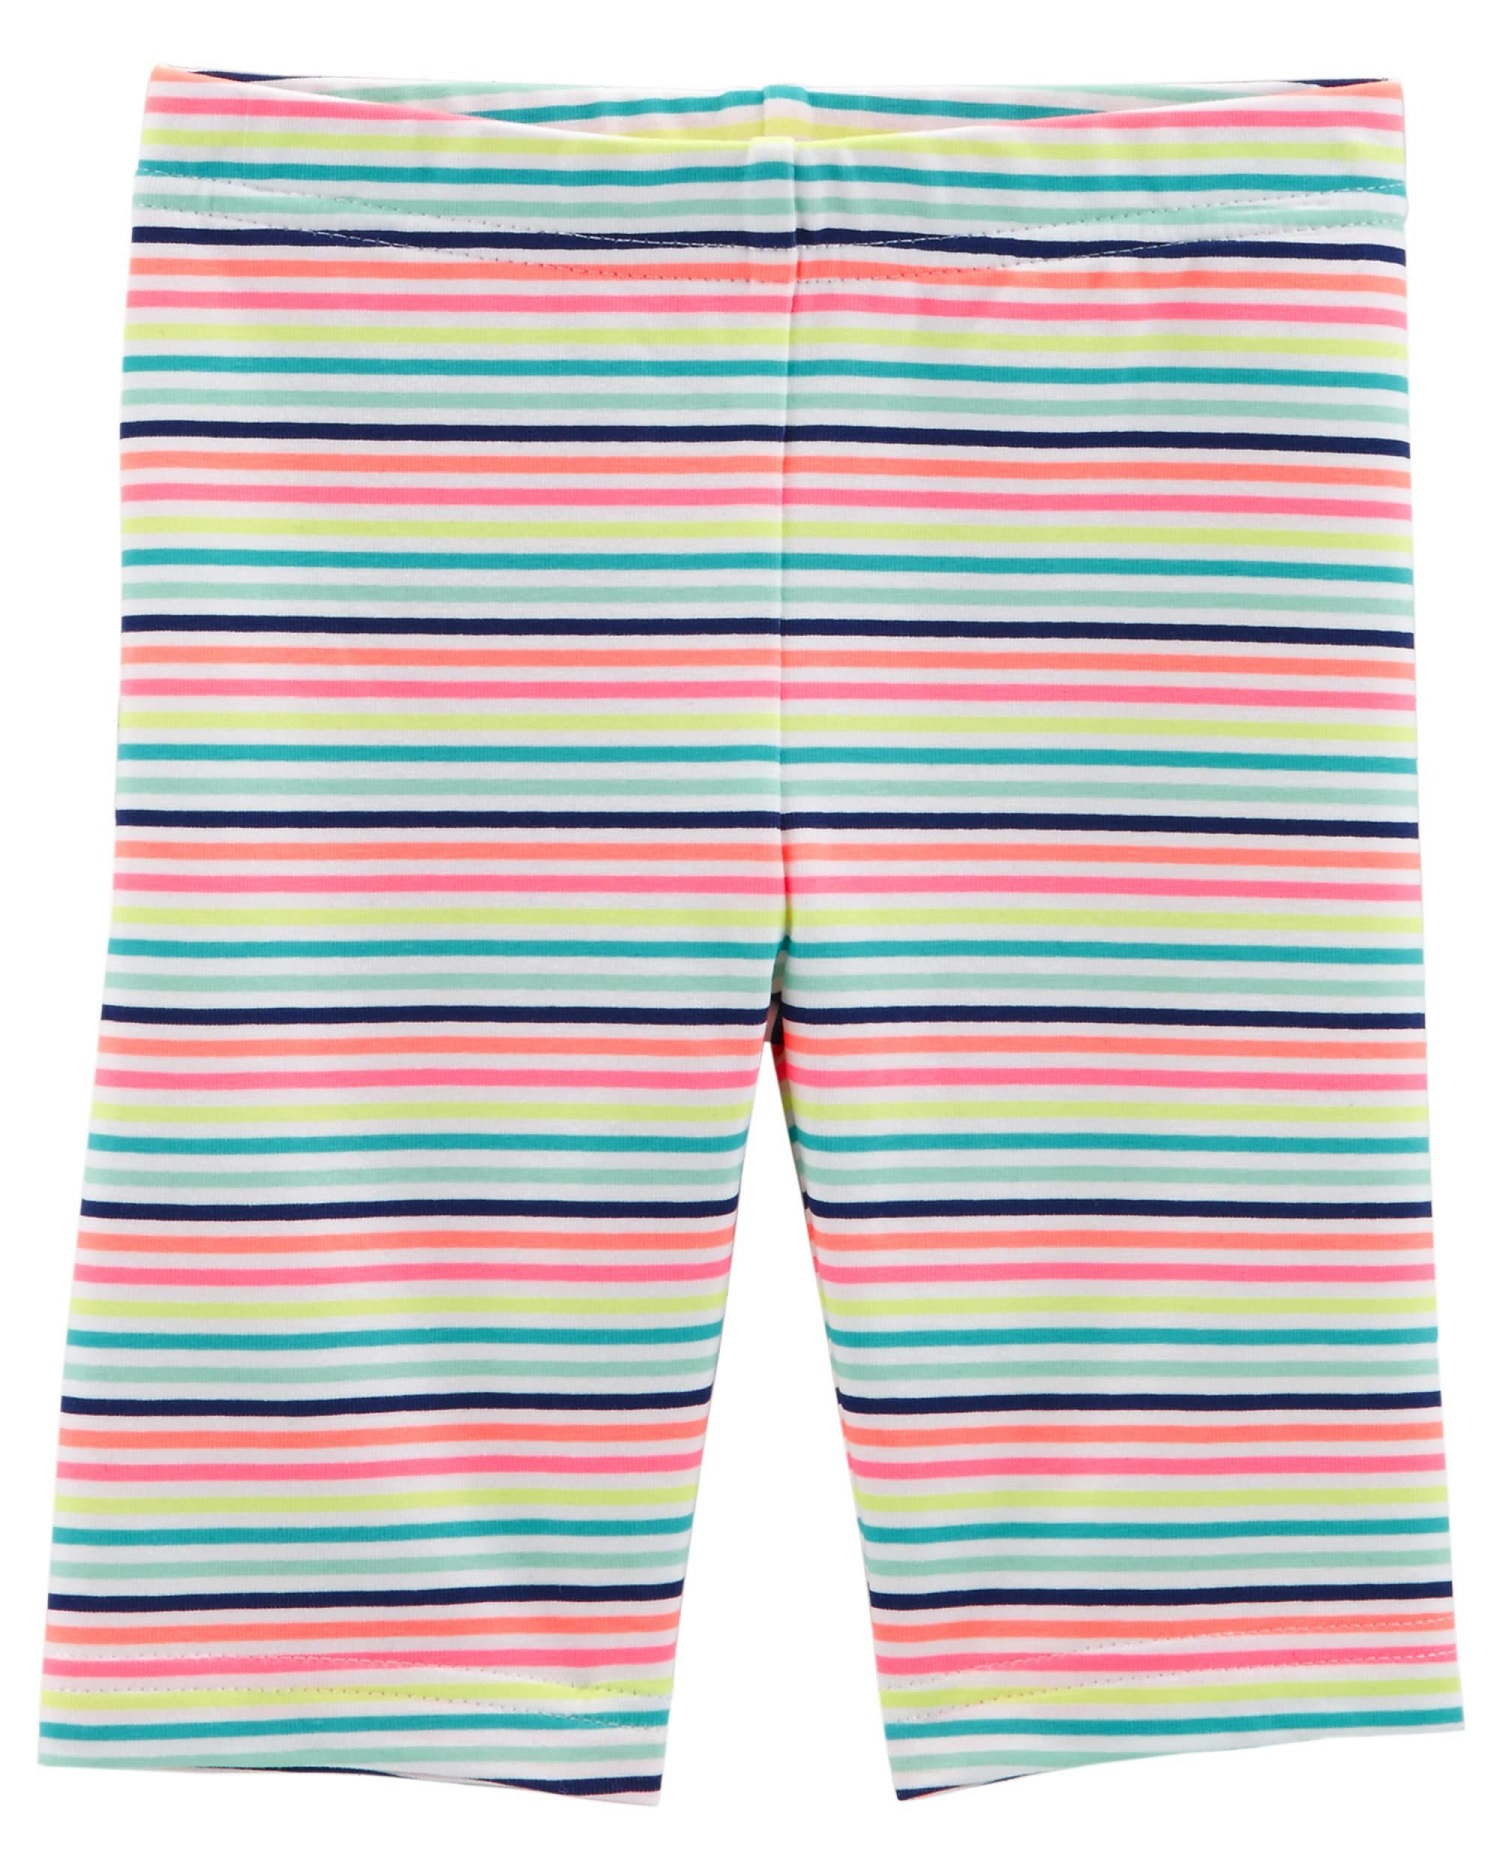 Carter's Baby Girls' Striped Tumbling Shorts, 18 Months